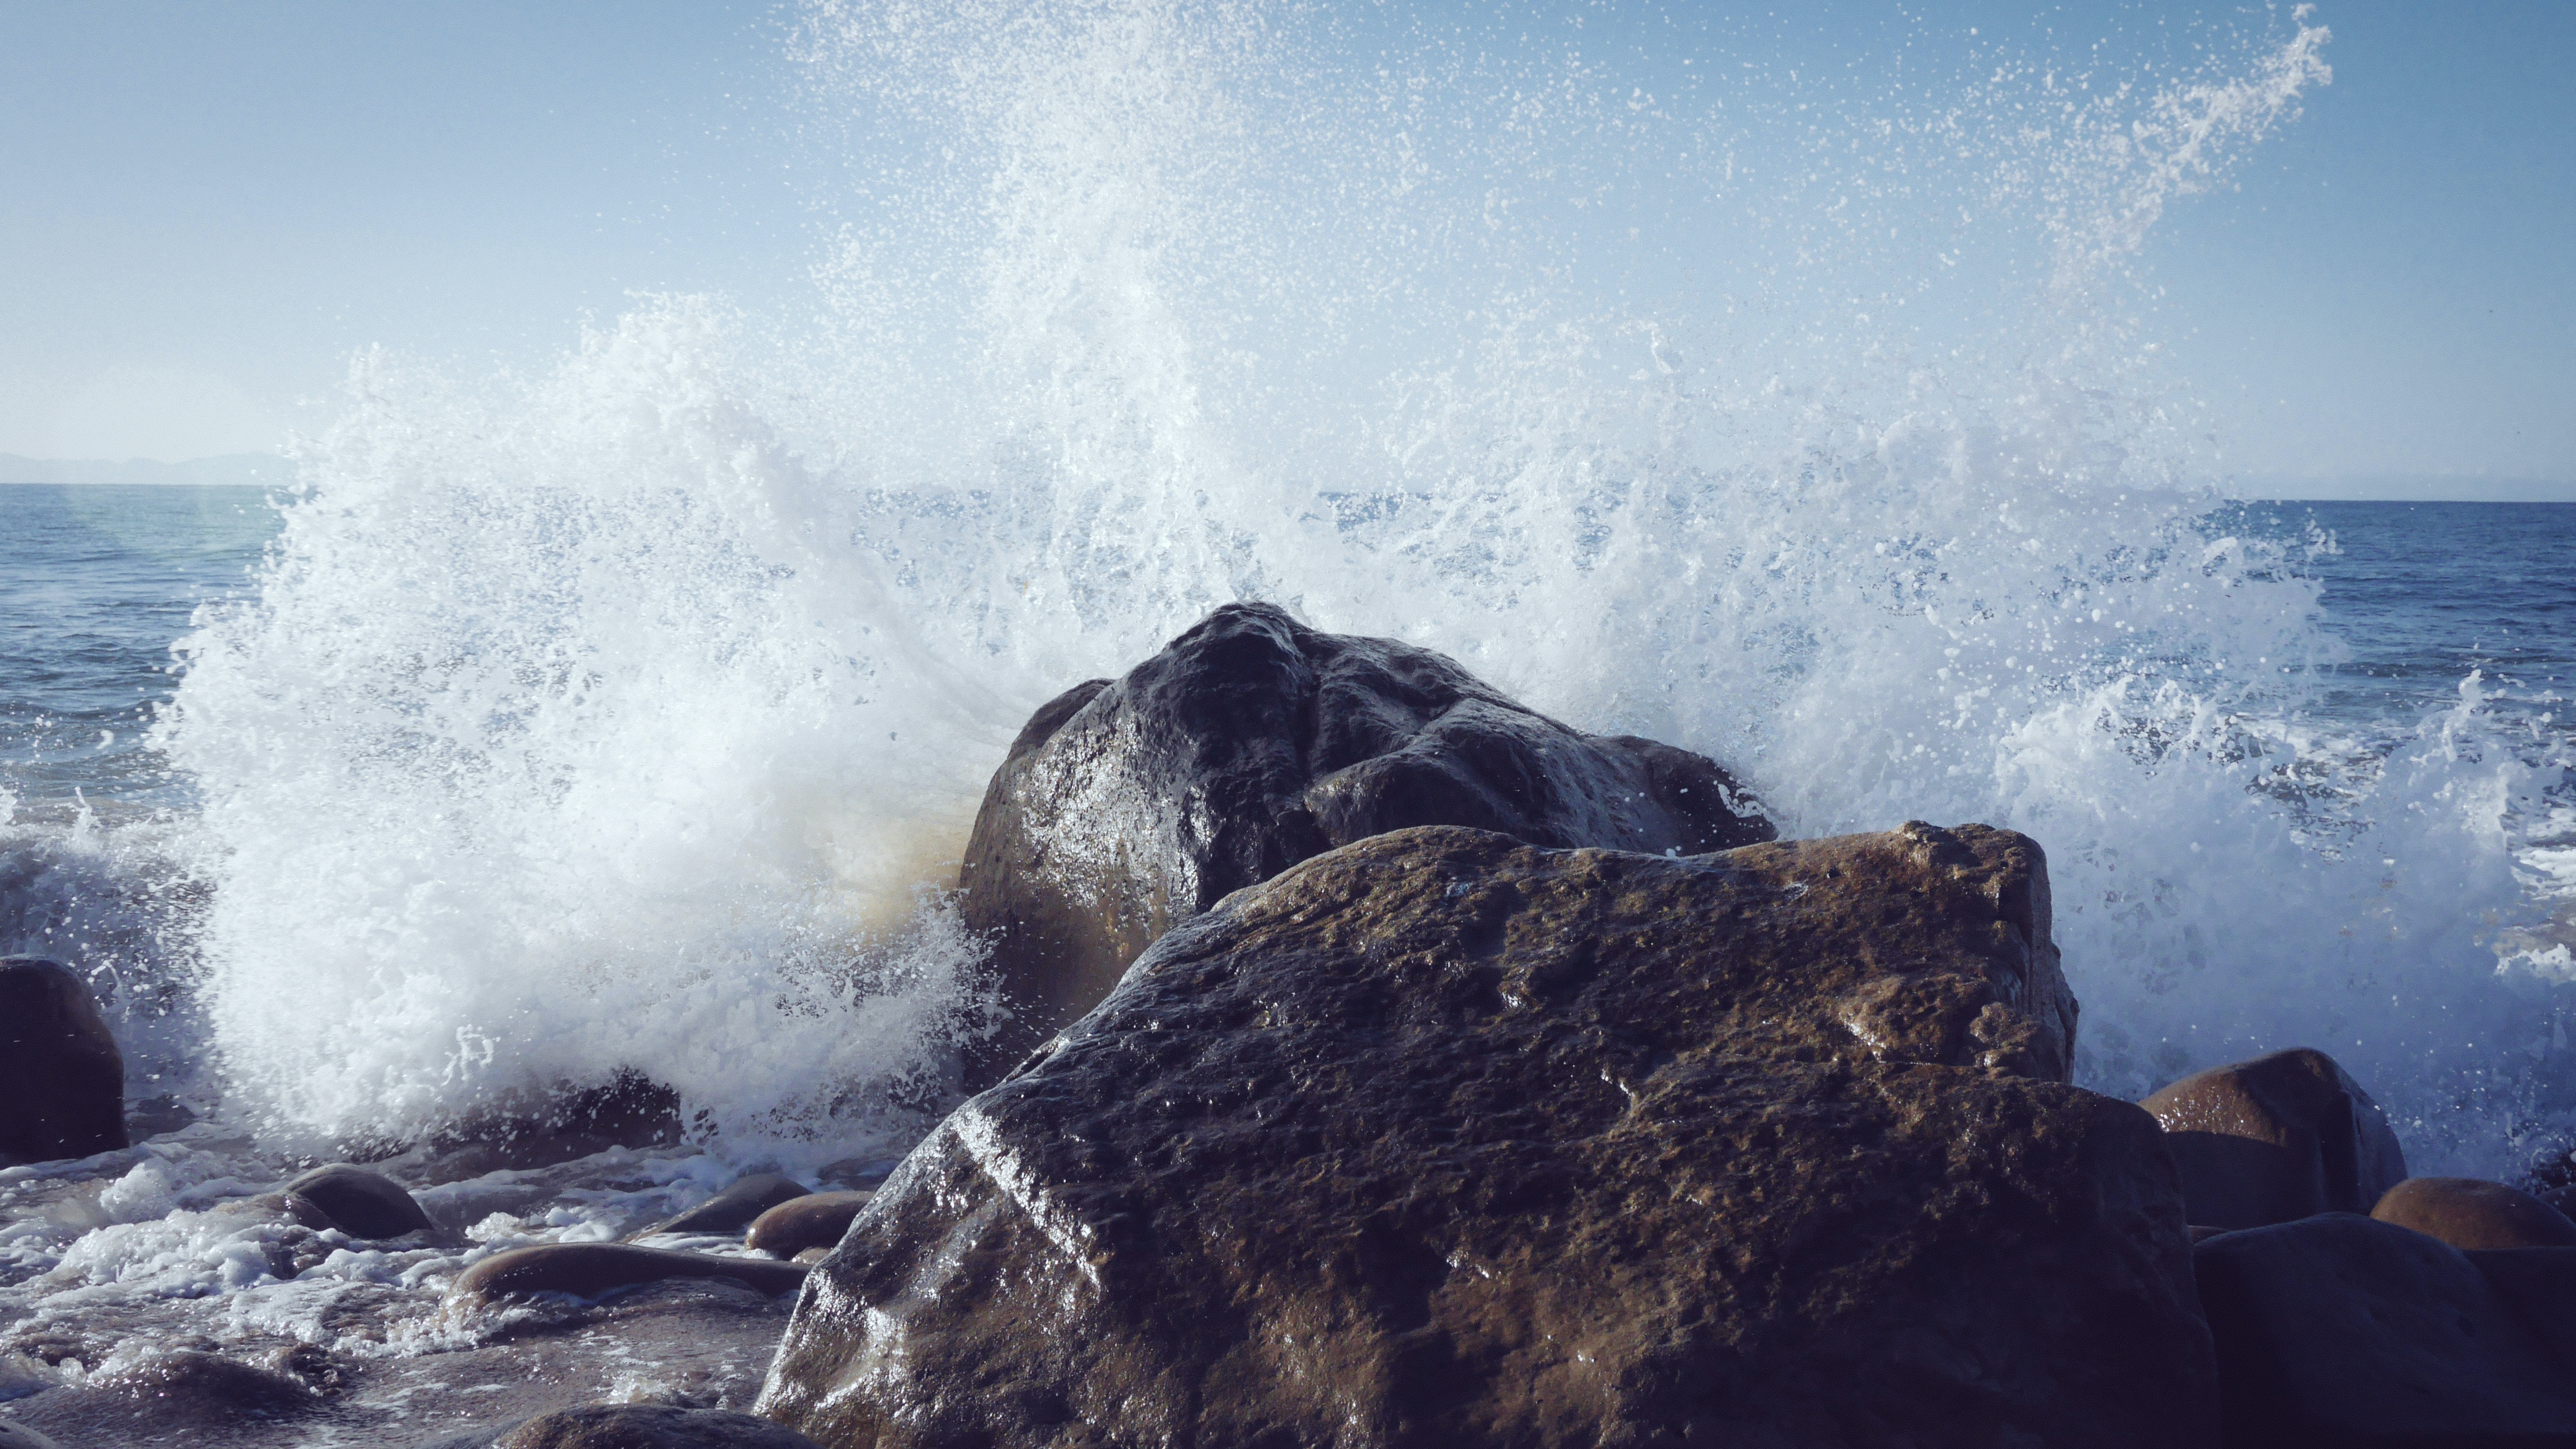 A wave splashing into a coastal rock, causing spray